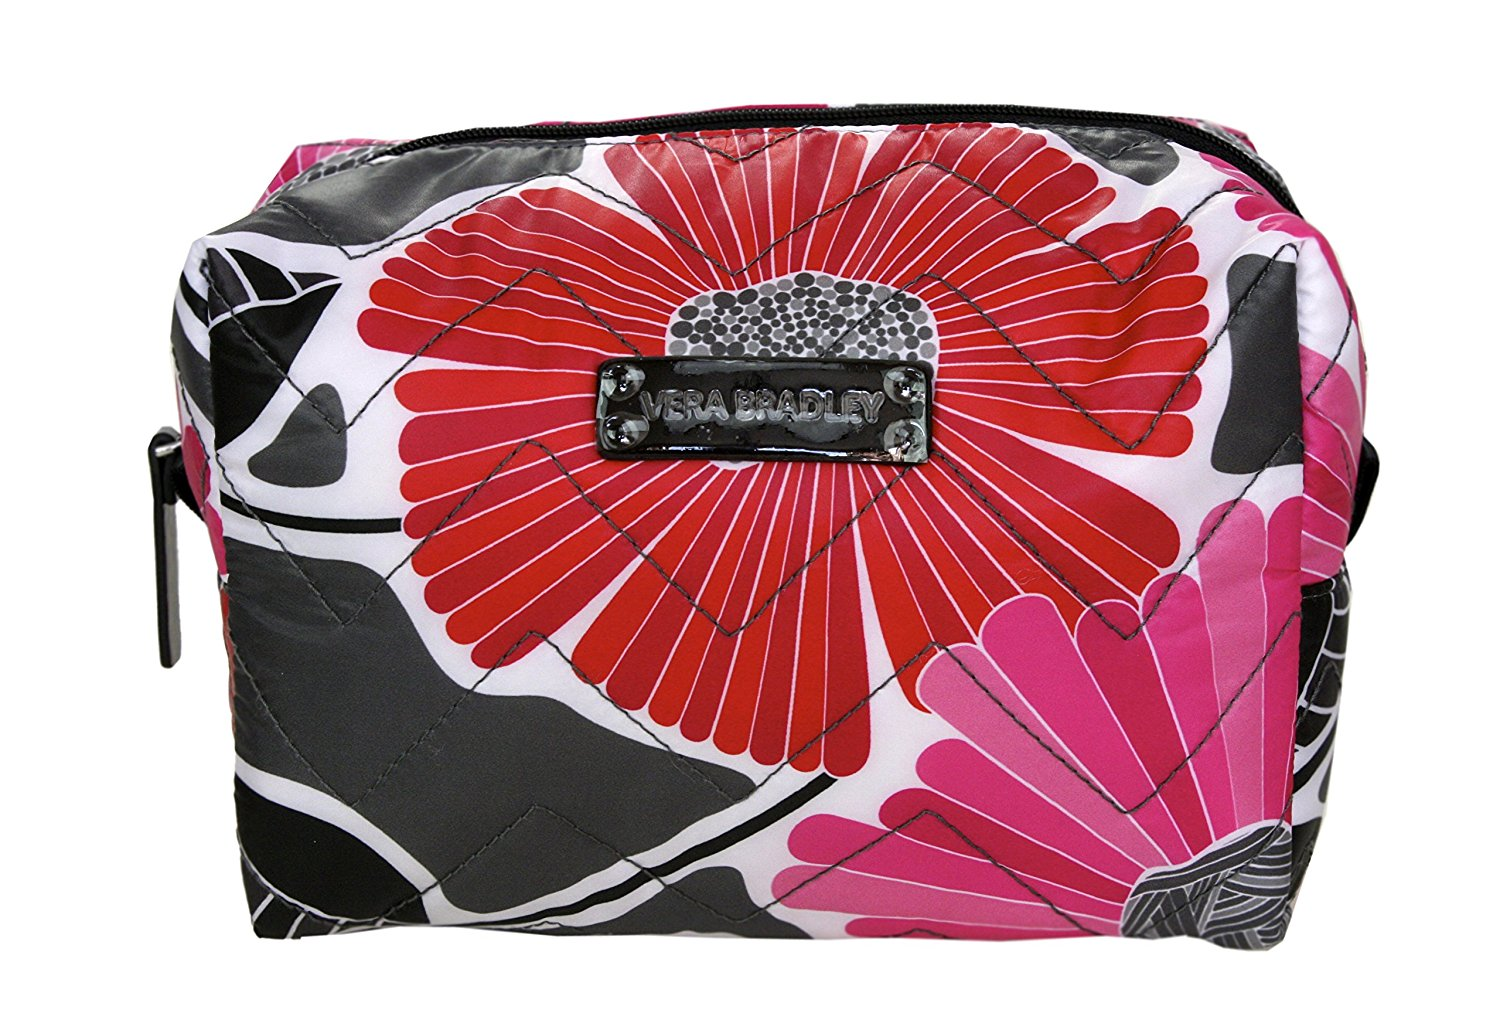 49b4ae0fcb Get Quotations · Vera Bradley Large Puffy Cosmetic Bag in Cheery Blossoms